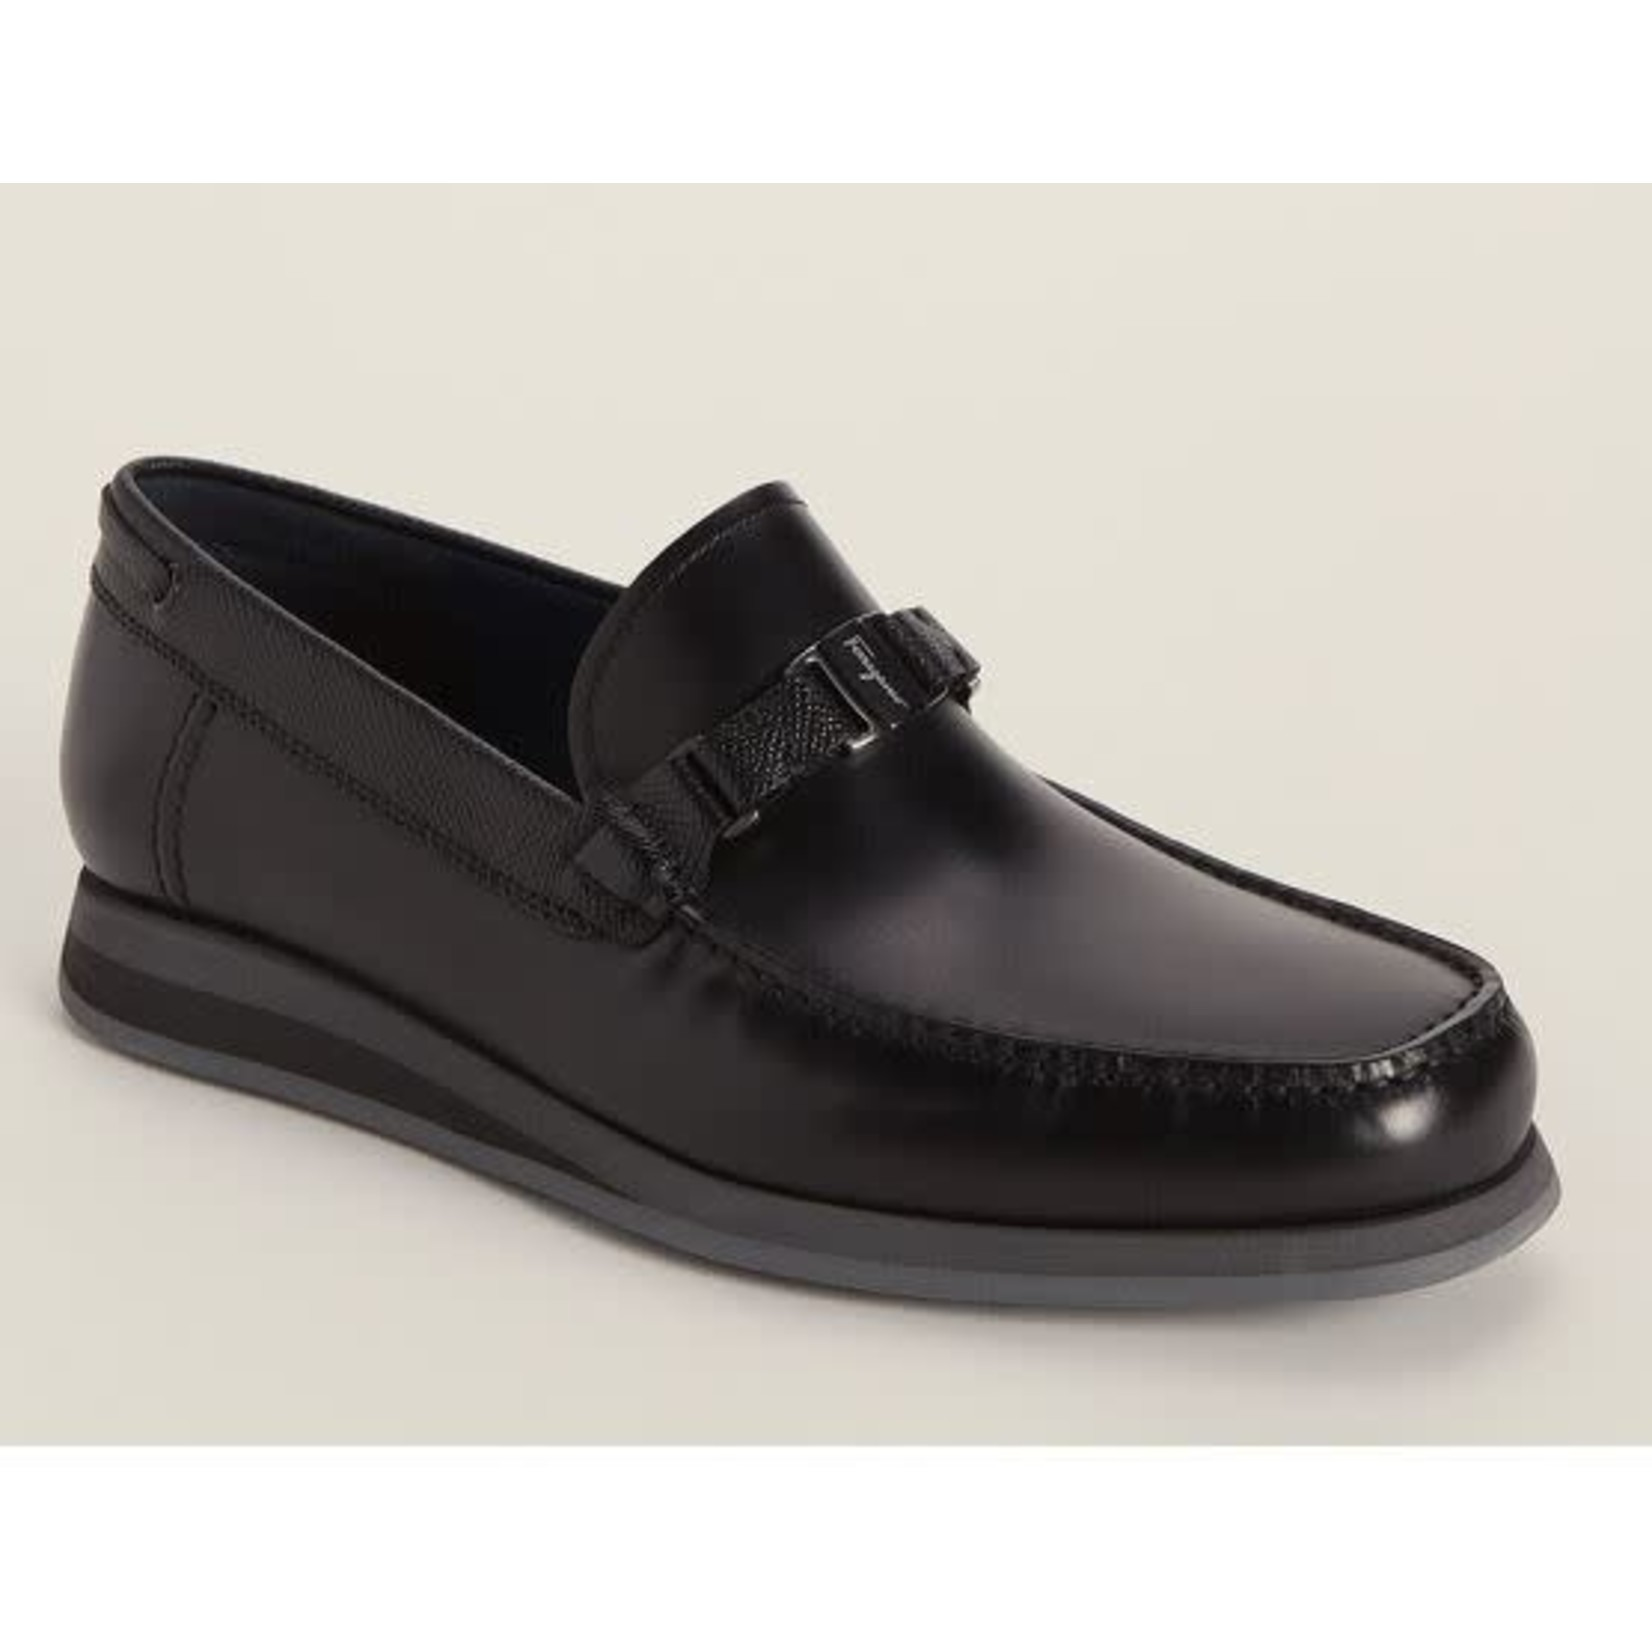 SALVATORE FERRAGAMO SALVATORE FERRAGAMO - LOAFER ASTER - 708473